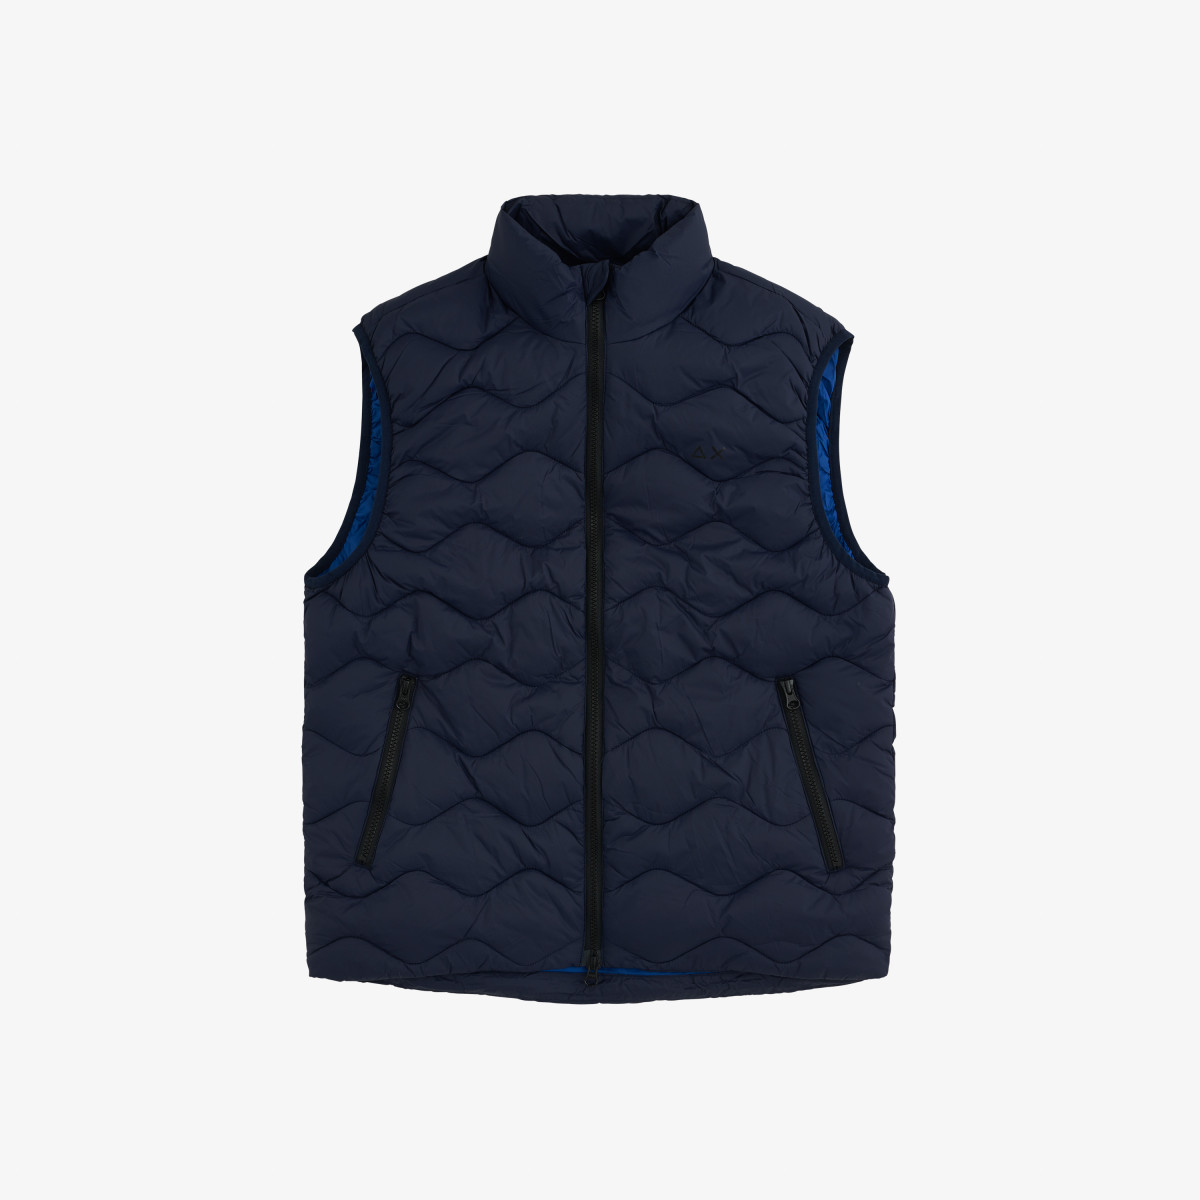 RAIN JACKET NO SLV NAVY BLUE